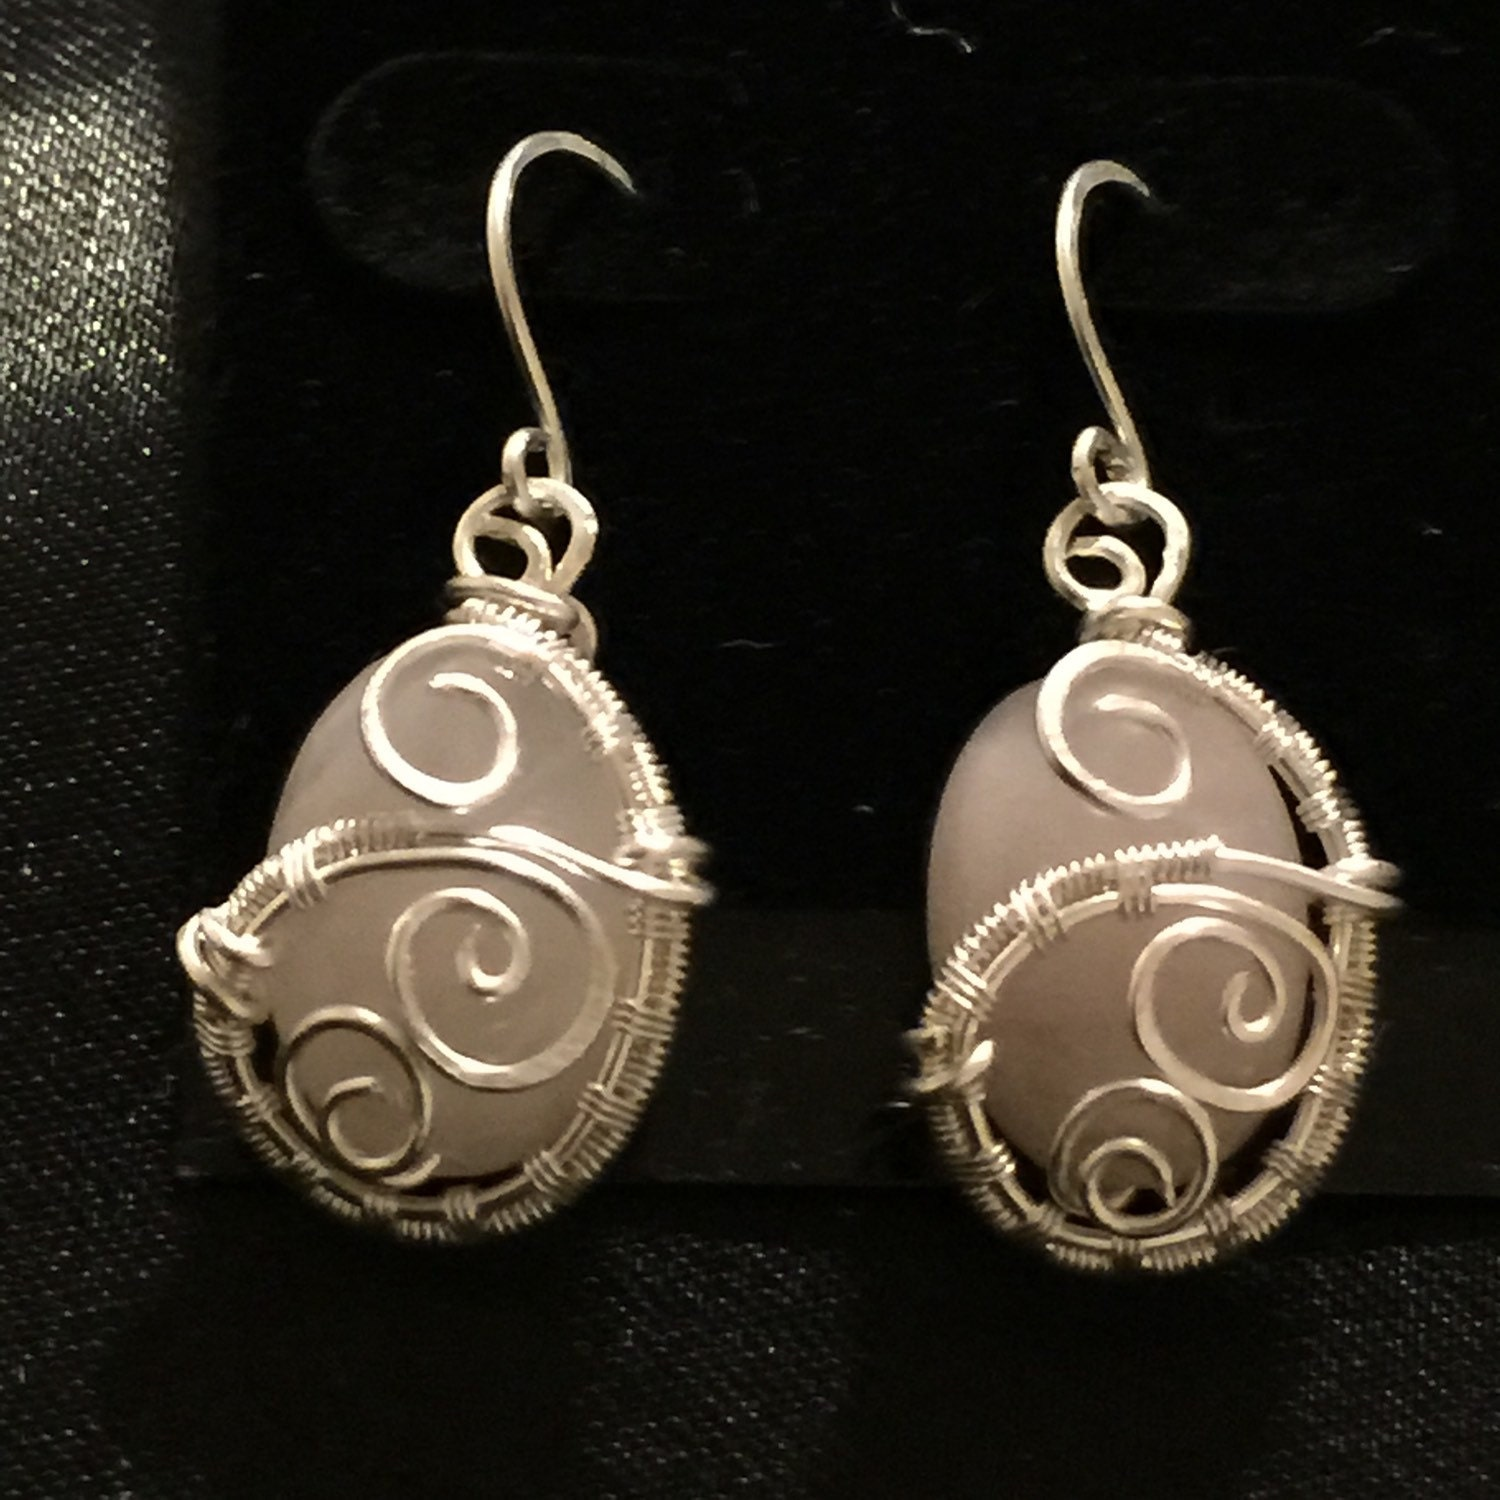 Custom Jewelry: Wire Wrapped Jewelry Handmade Rose Quartz Earrings Bead And